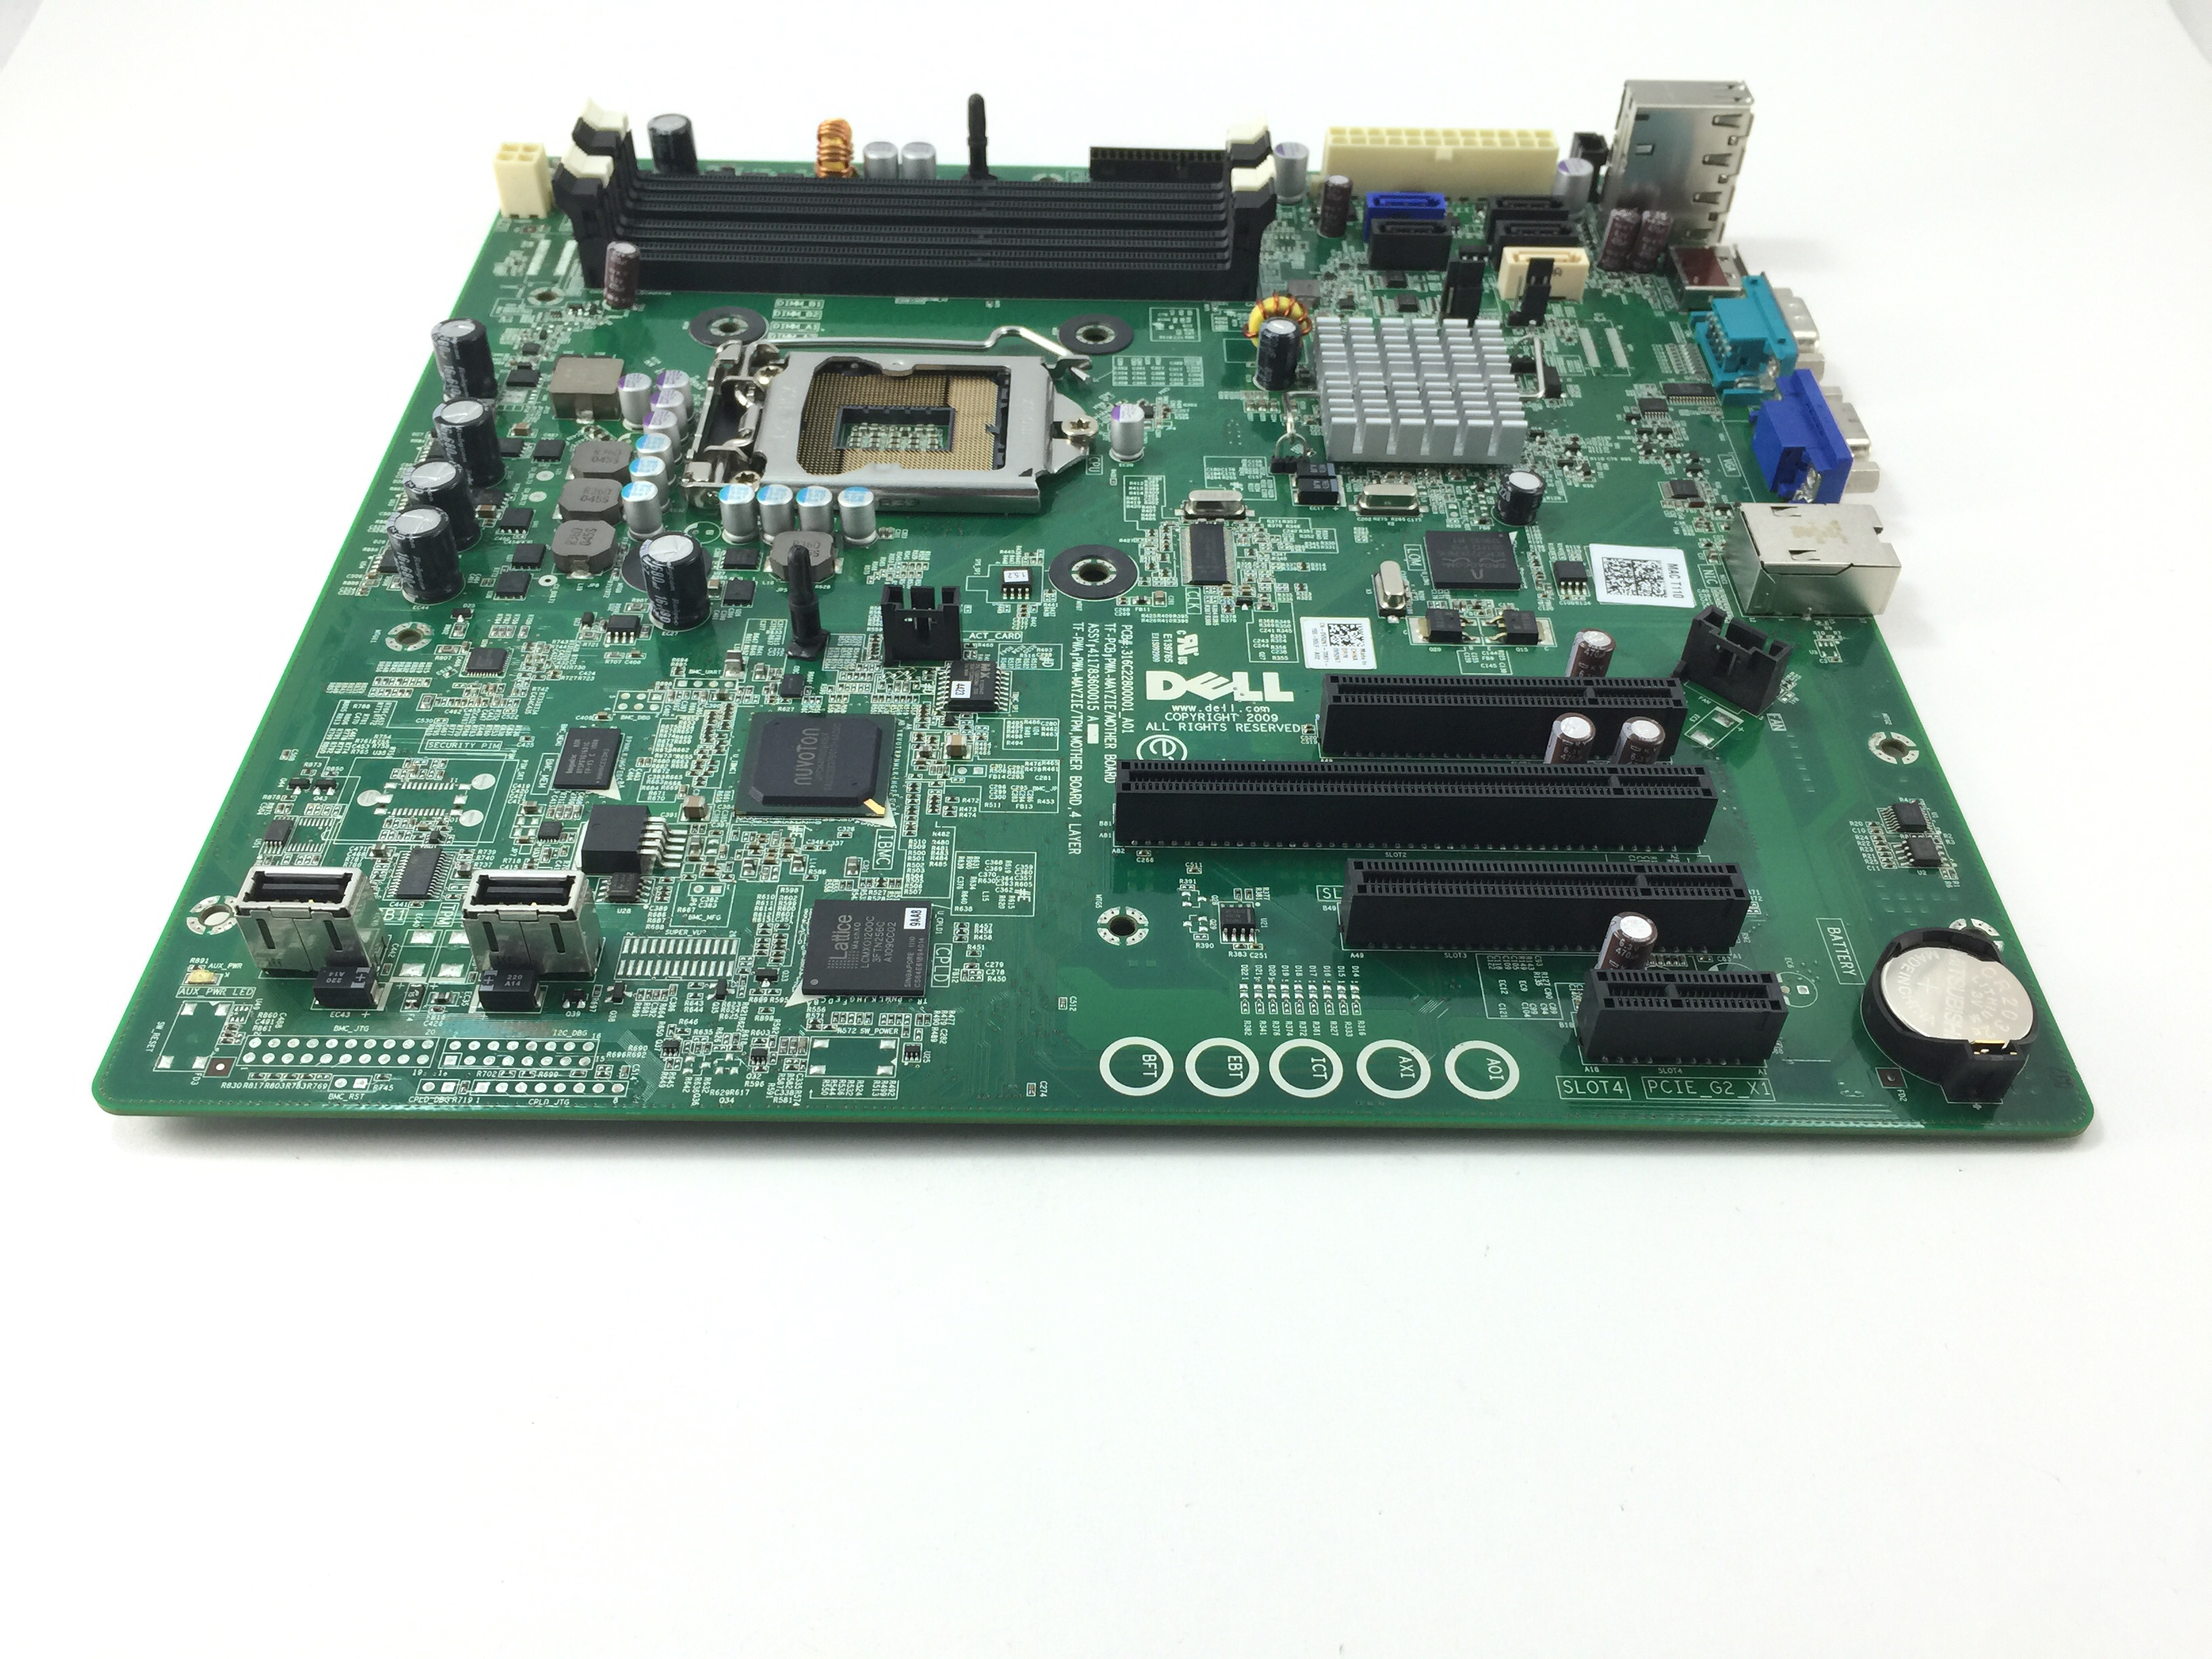 Dell PowerEdge T110 LGA 1155 Server Motherboard (V52N7)